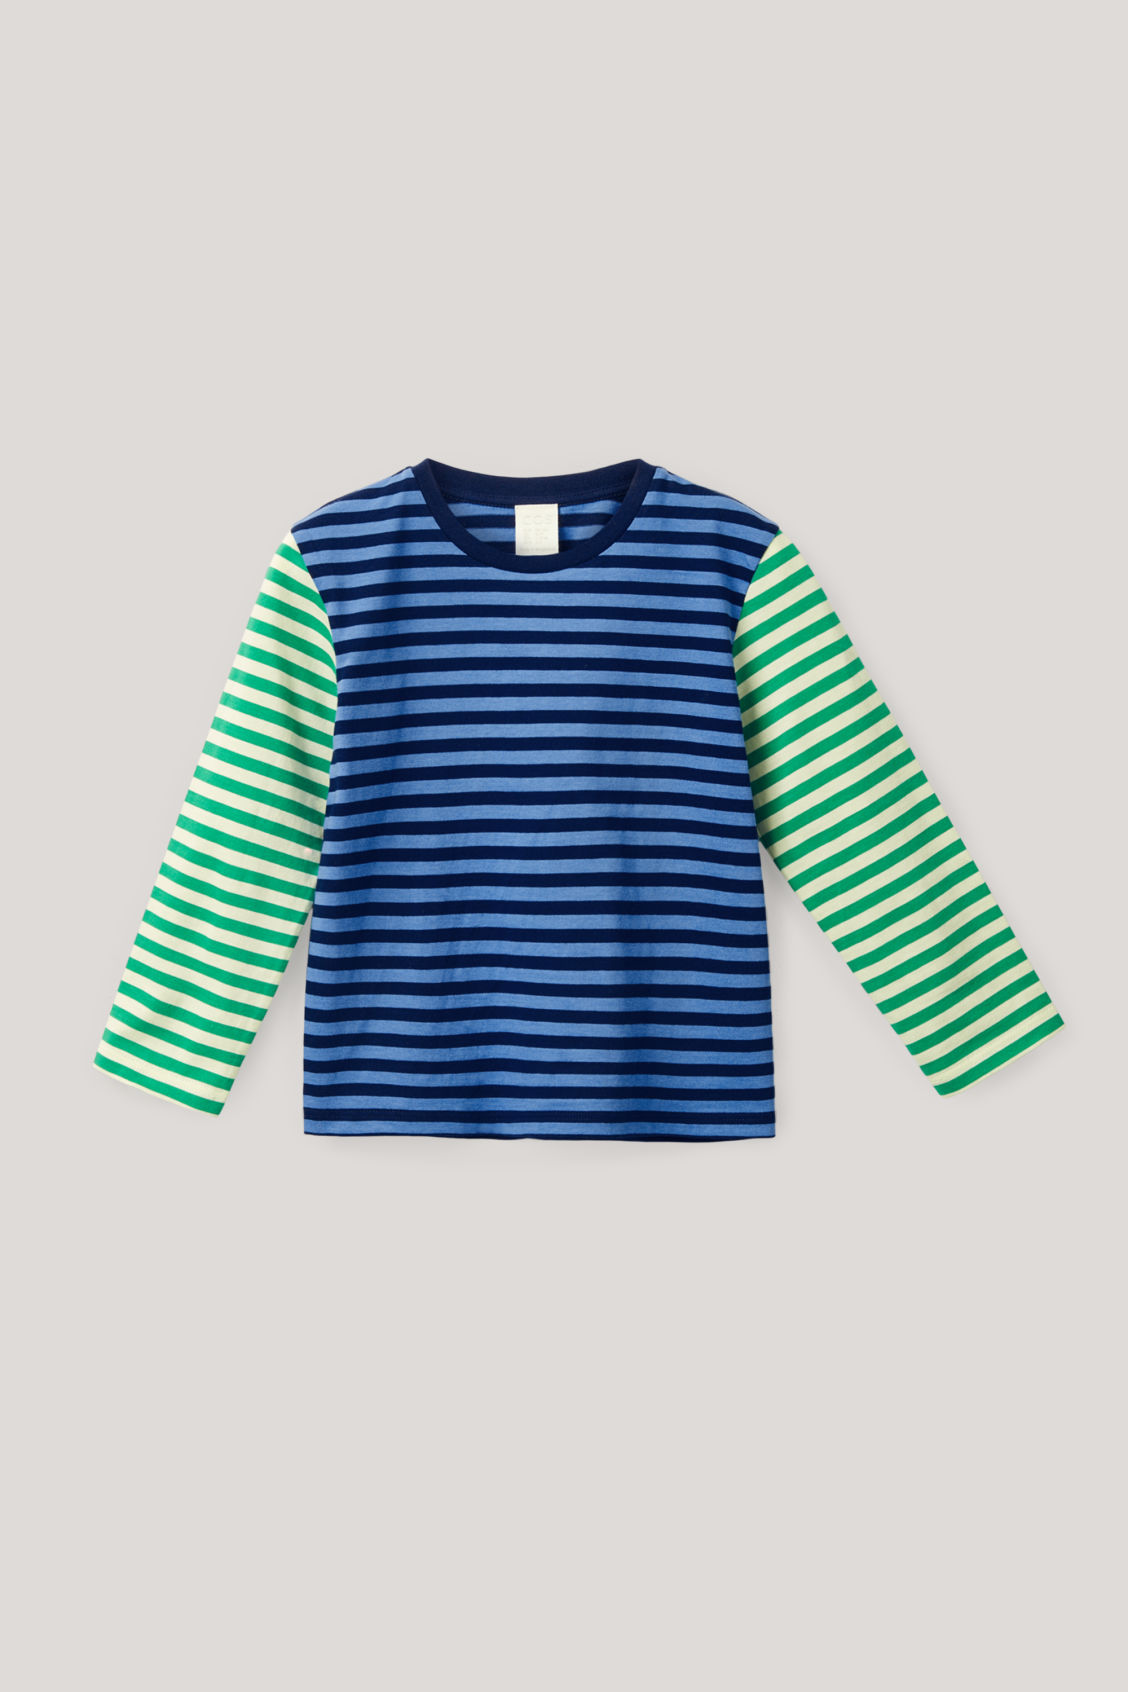 Cos Kids' Striped Organic Cotton Top In Blue